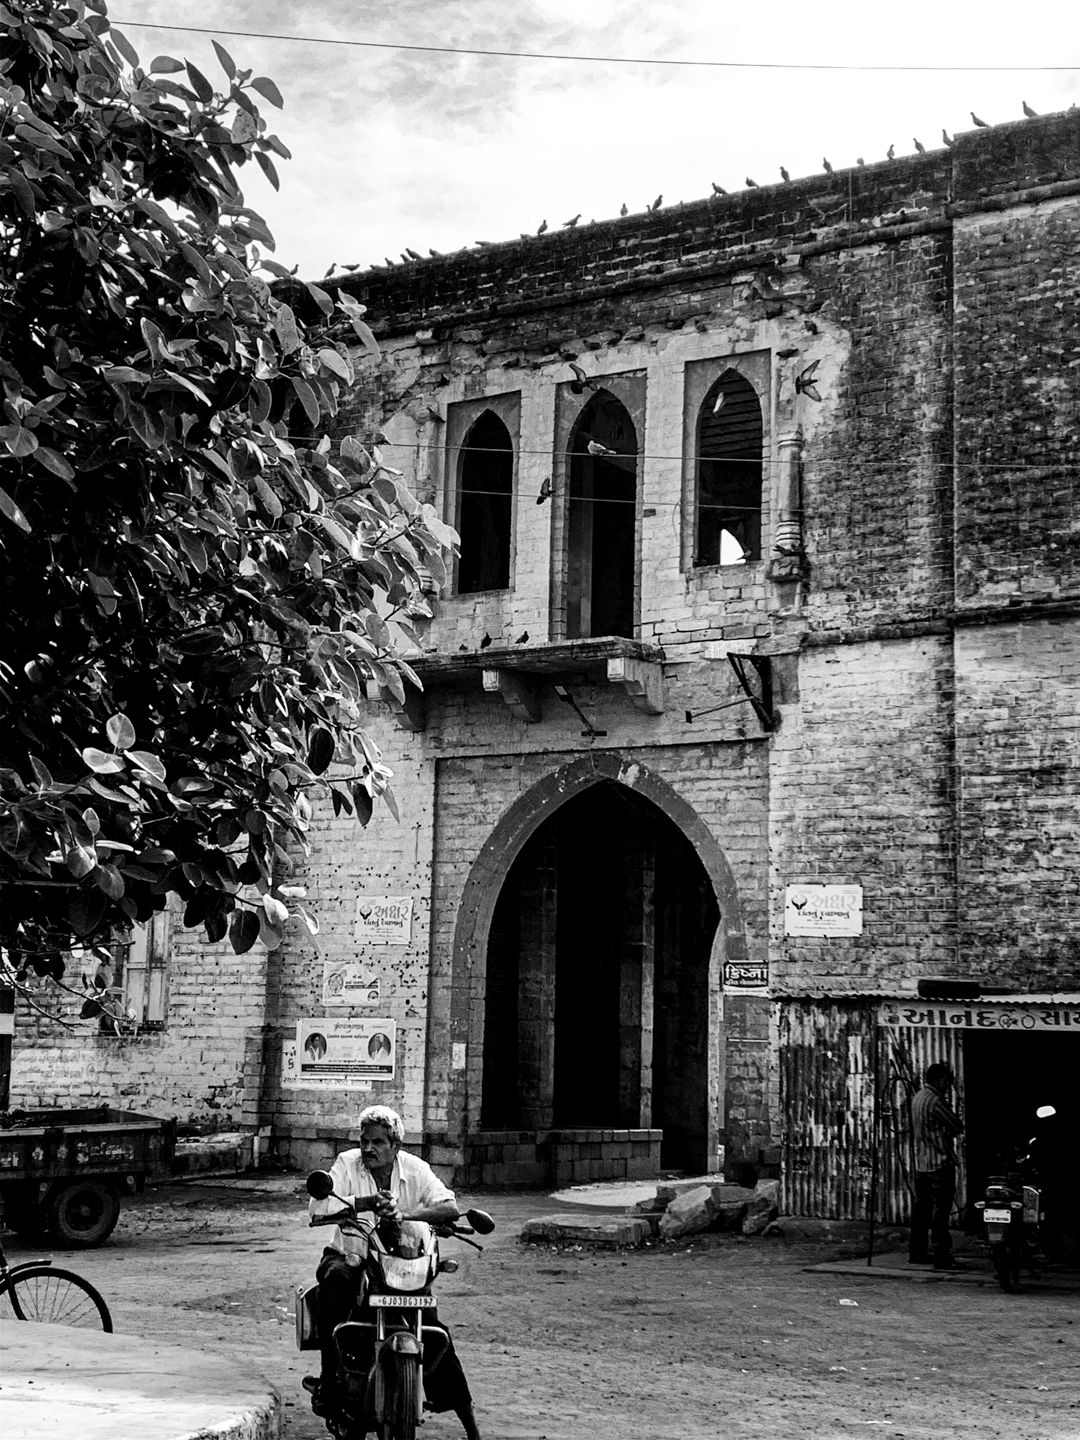 Old gate, colonial architecture, India. © Mohit Patel